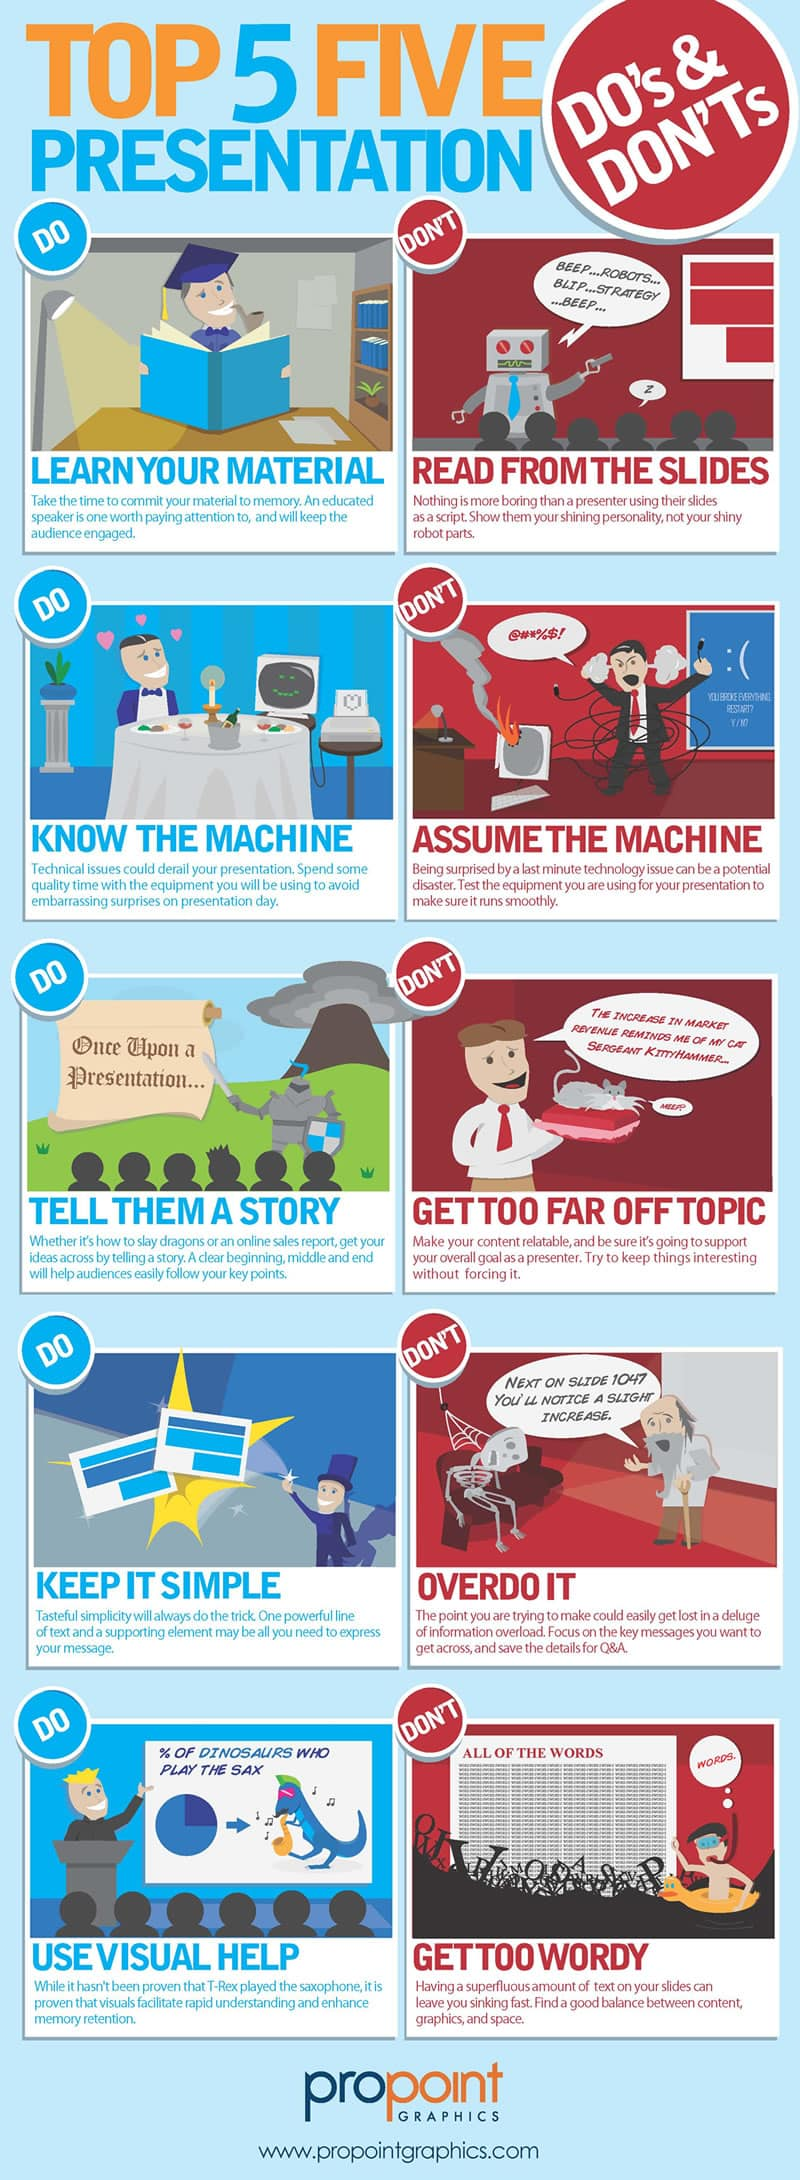 Top Five Presentation Do's and Don'ts (Infographic)